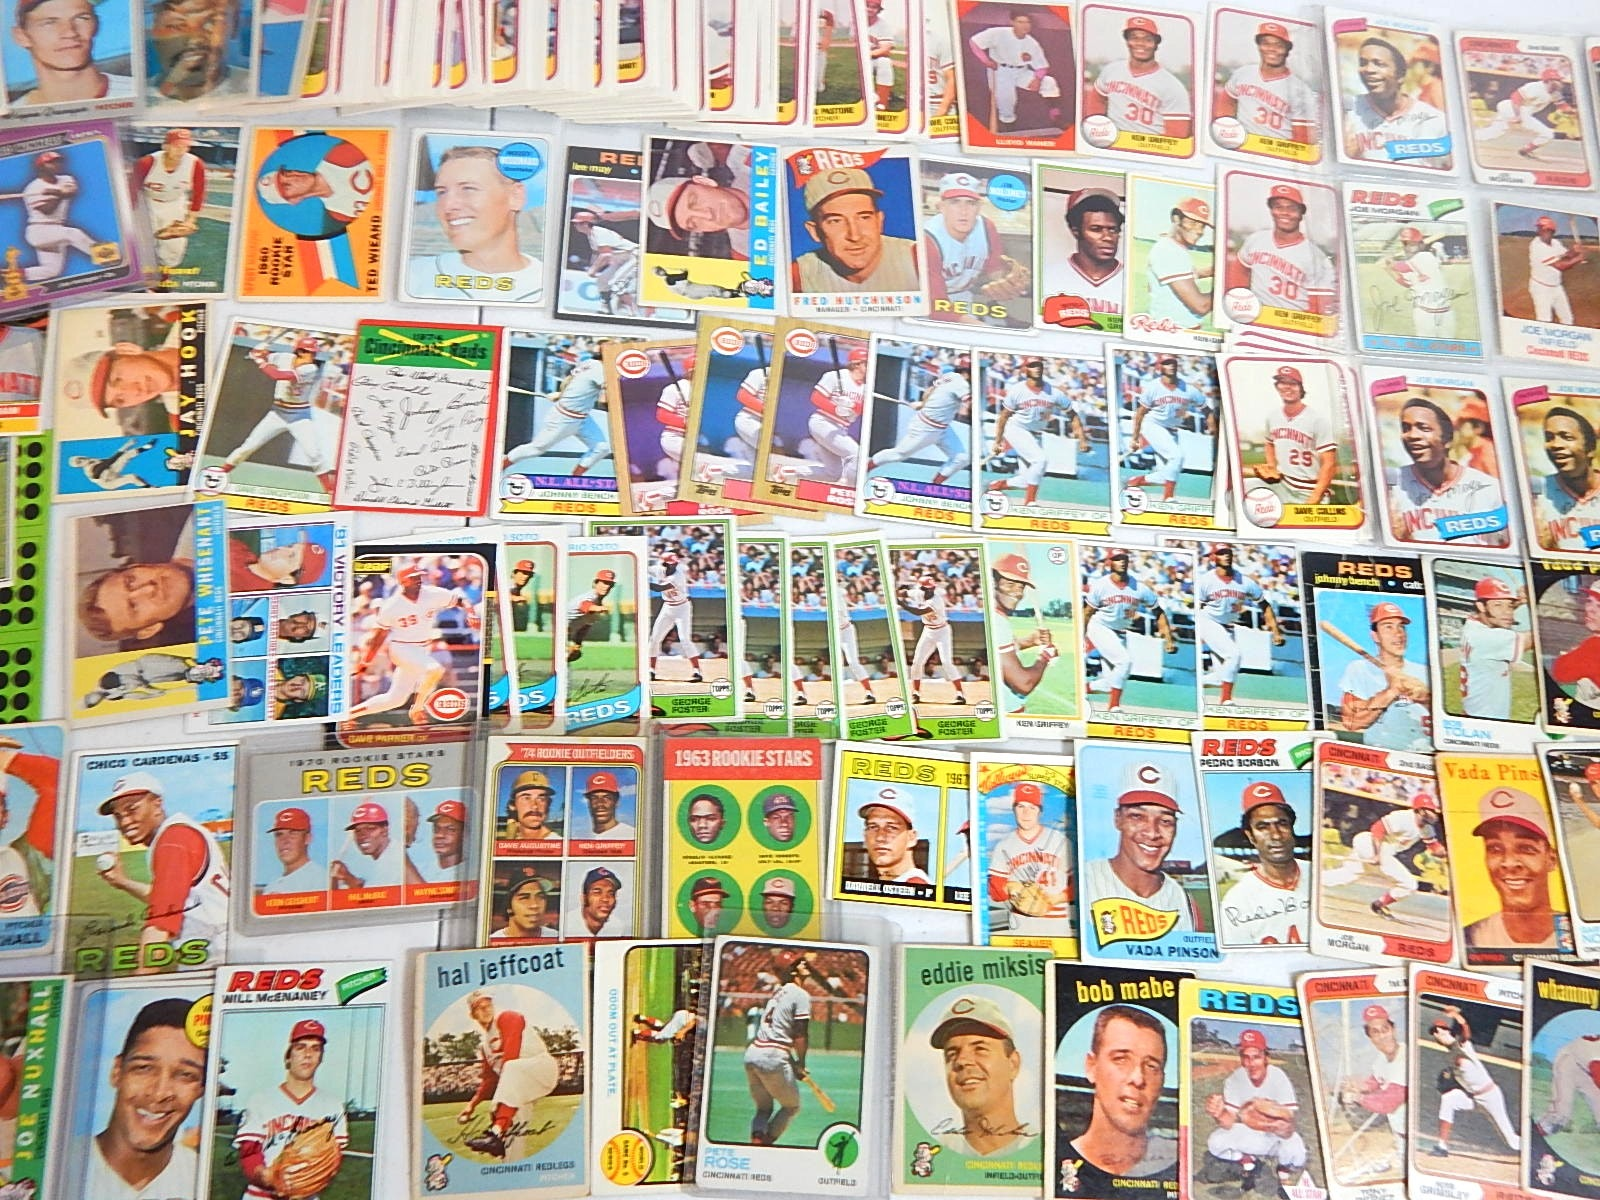 Large Cincinnati Reds Baseball Card Collection from 1950s to 1980s